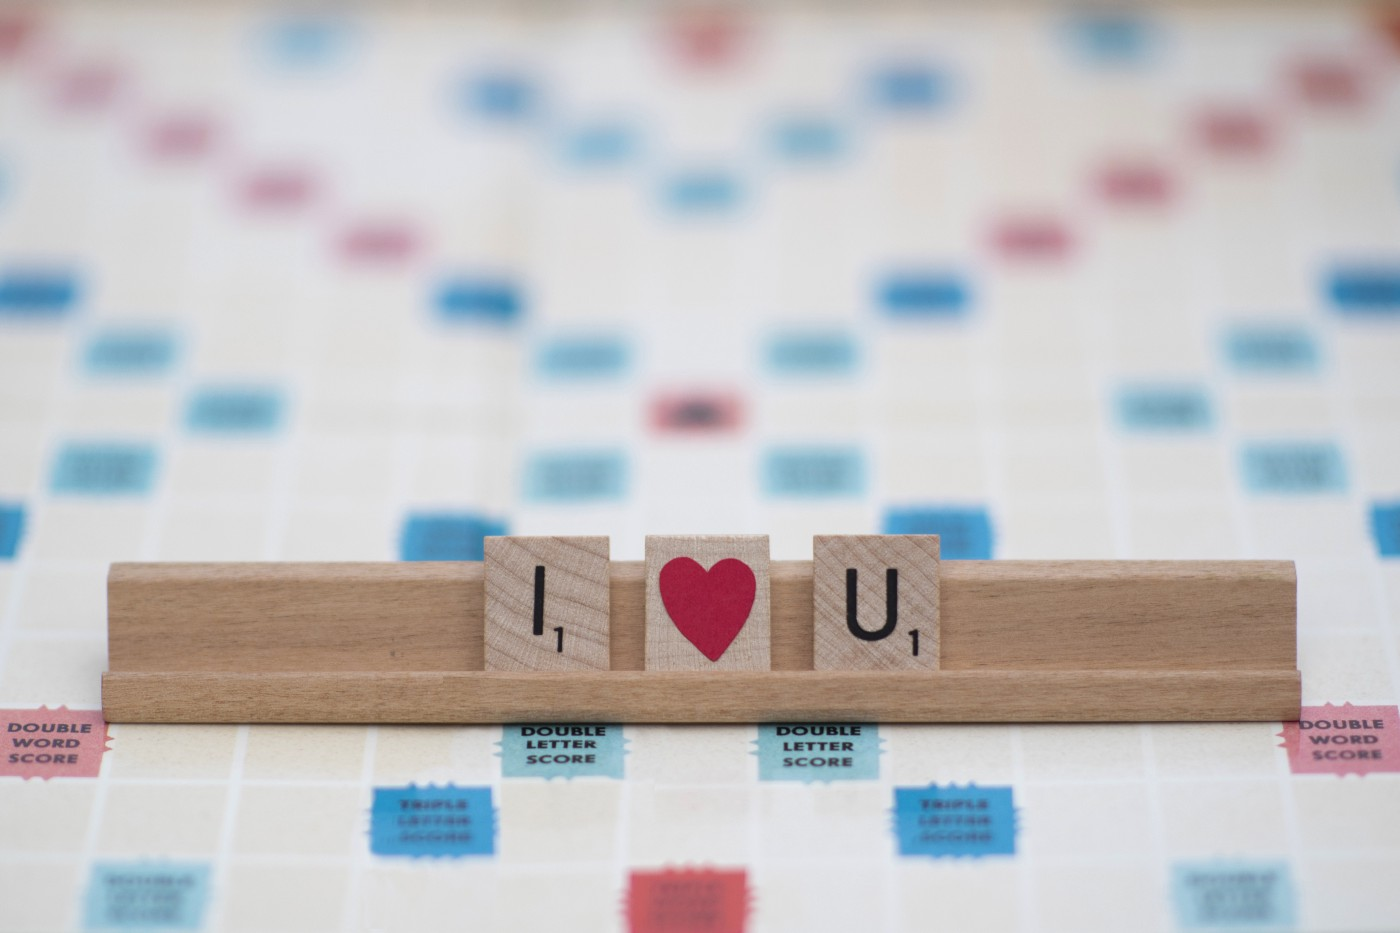 I love you written with scrabble letters